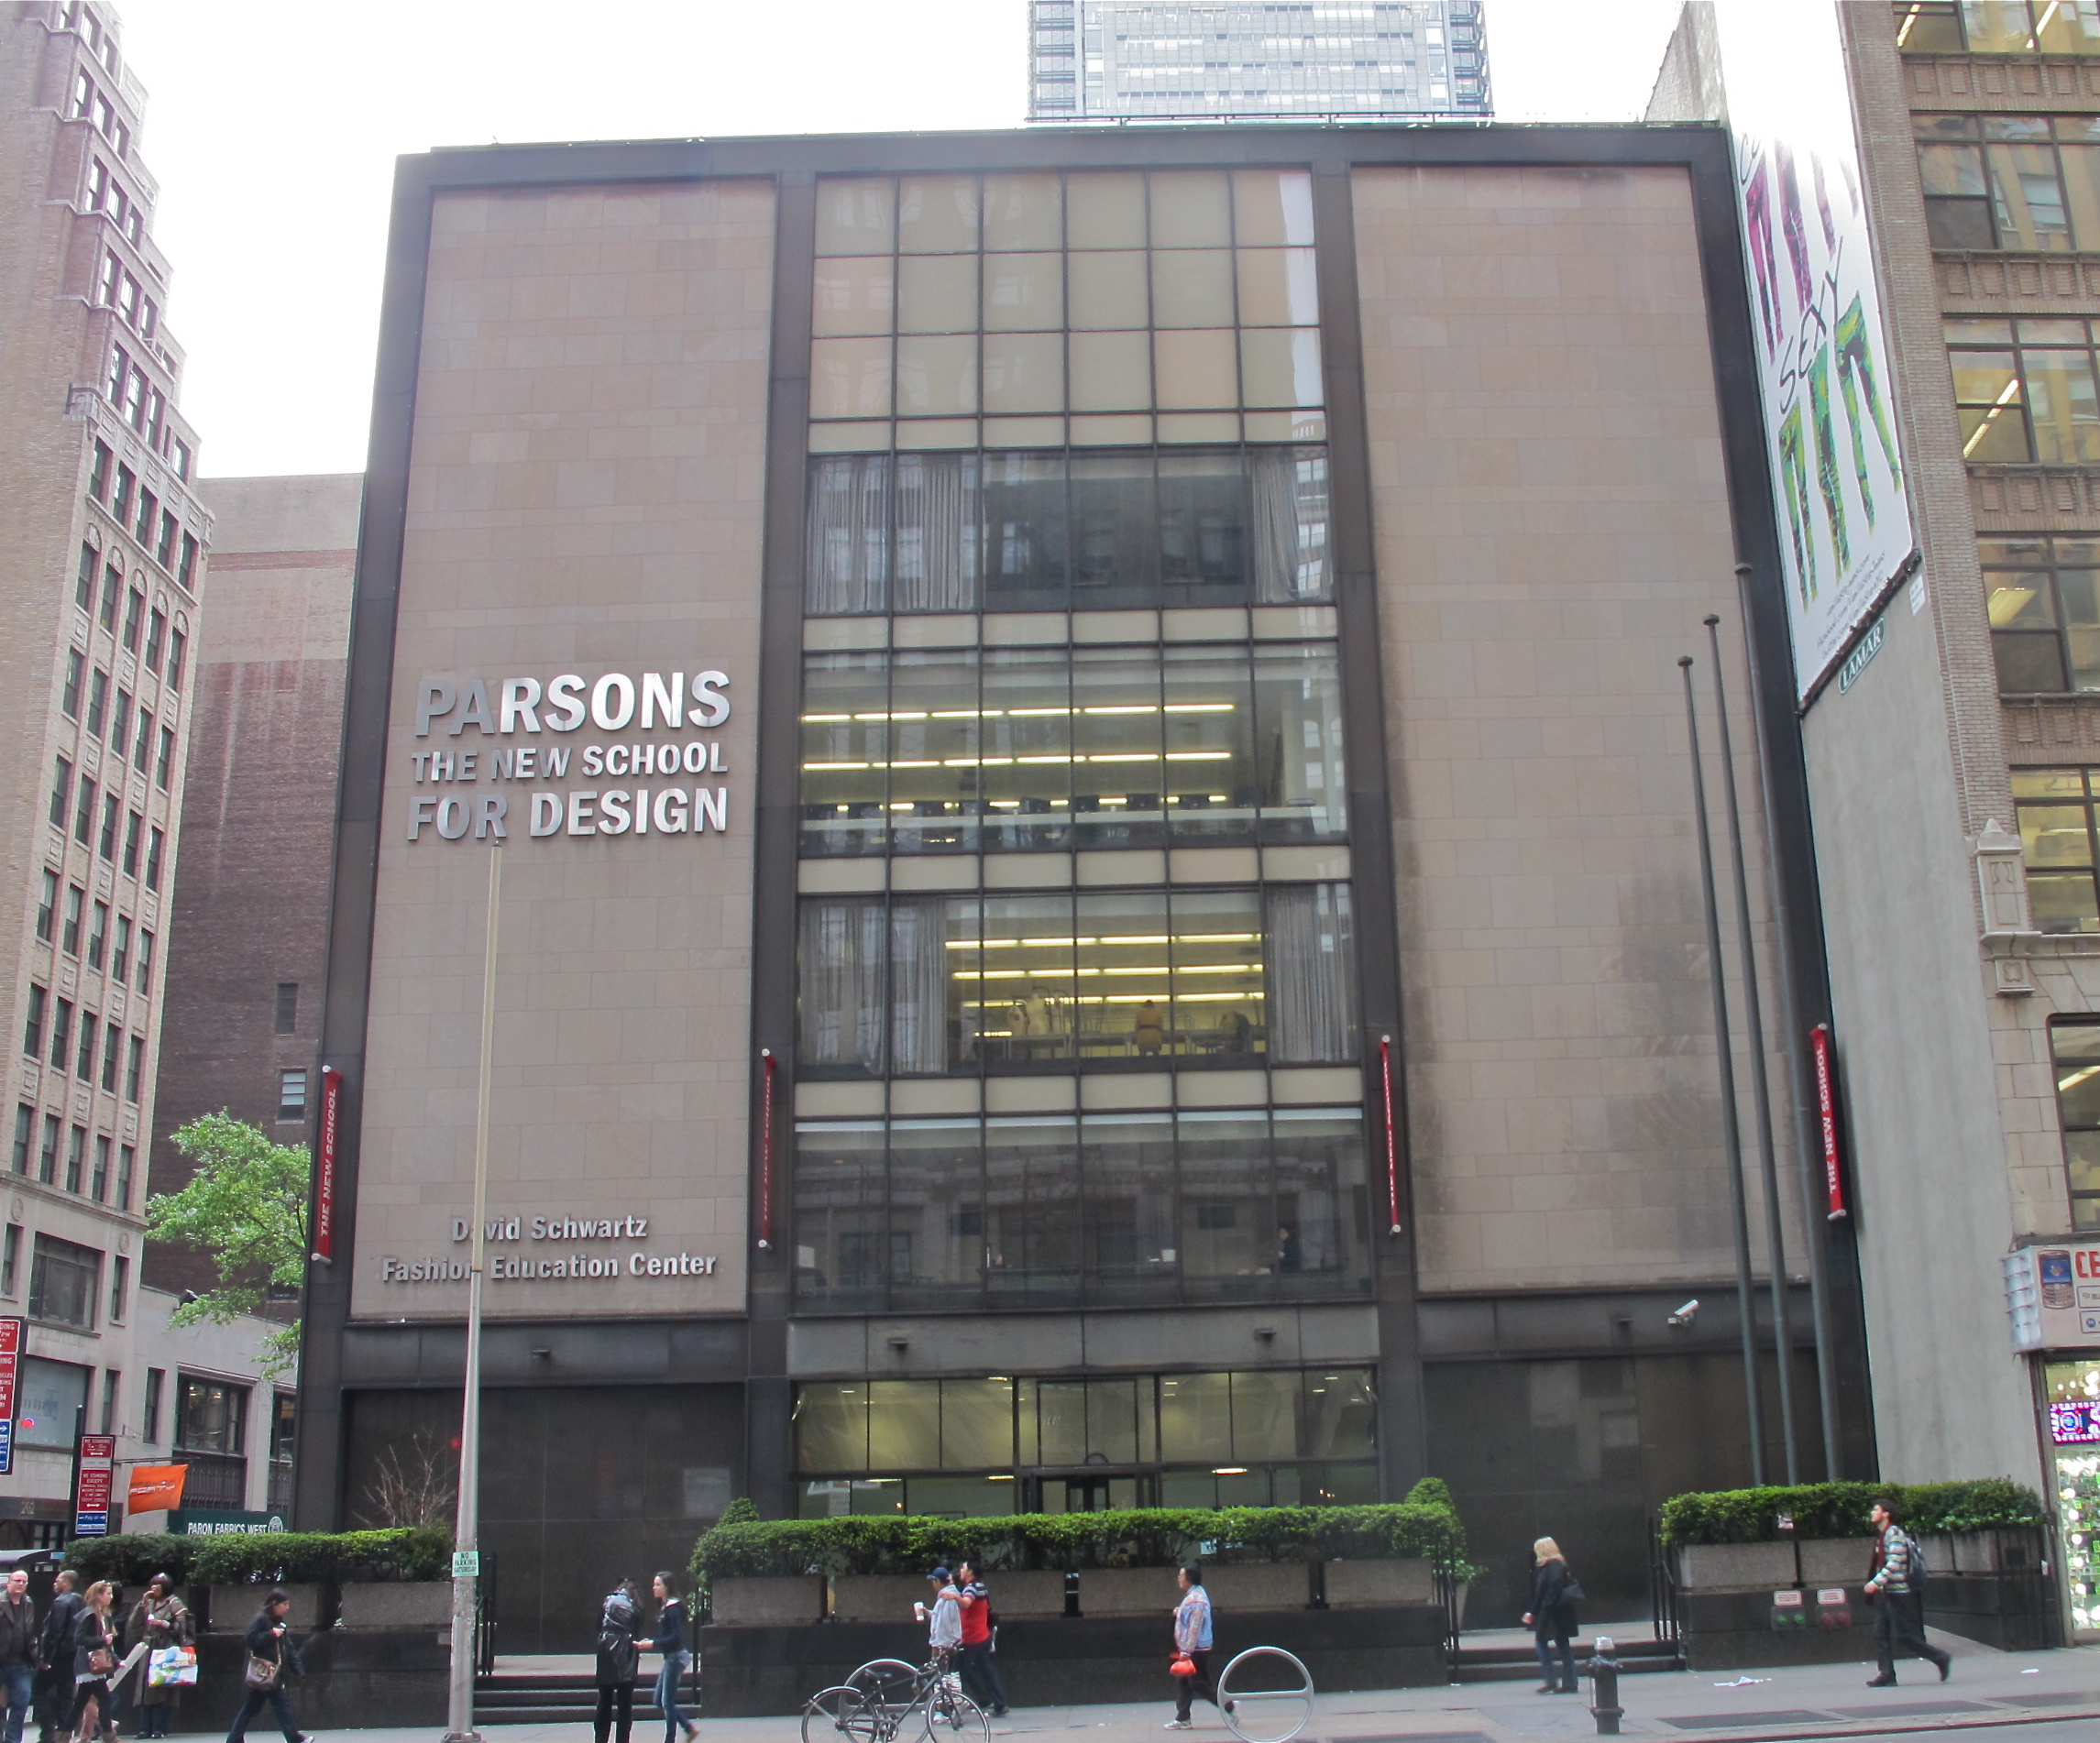 Parsons School of Design at The New School